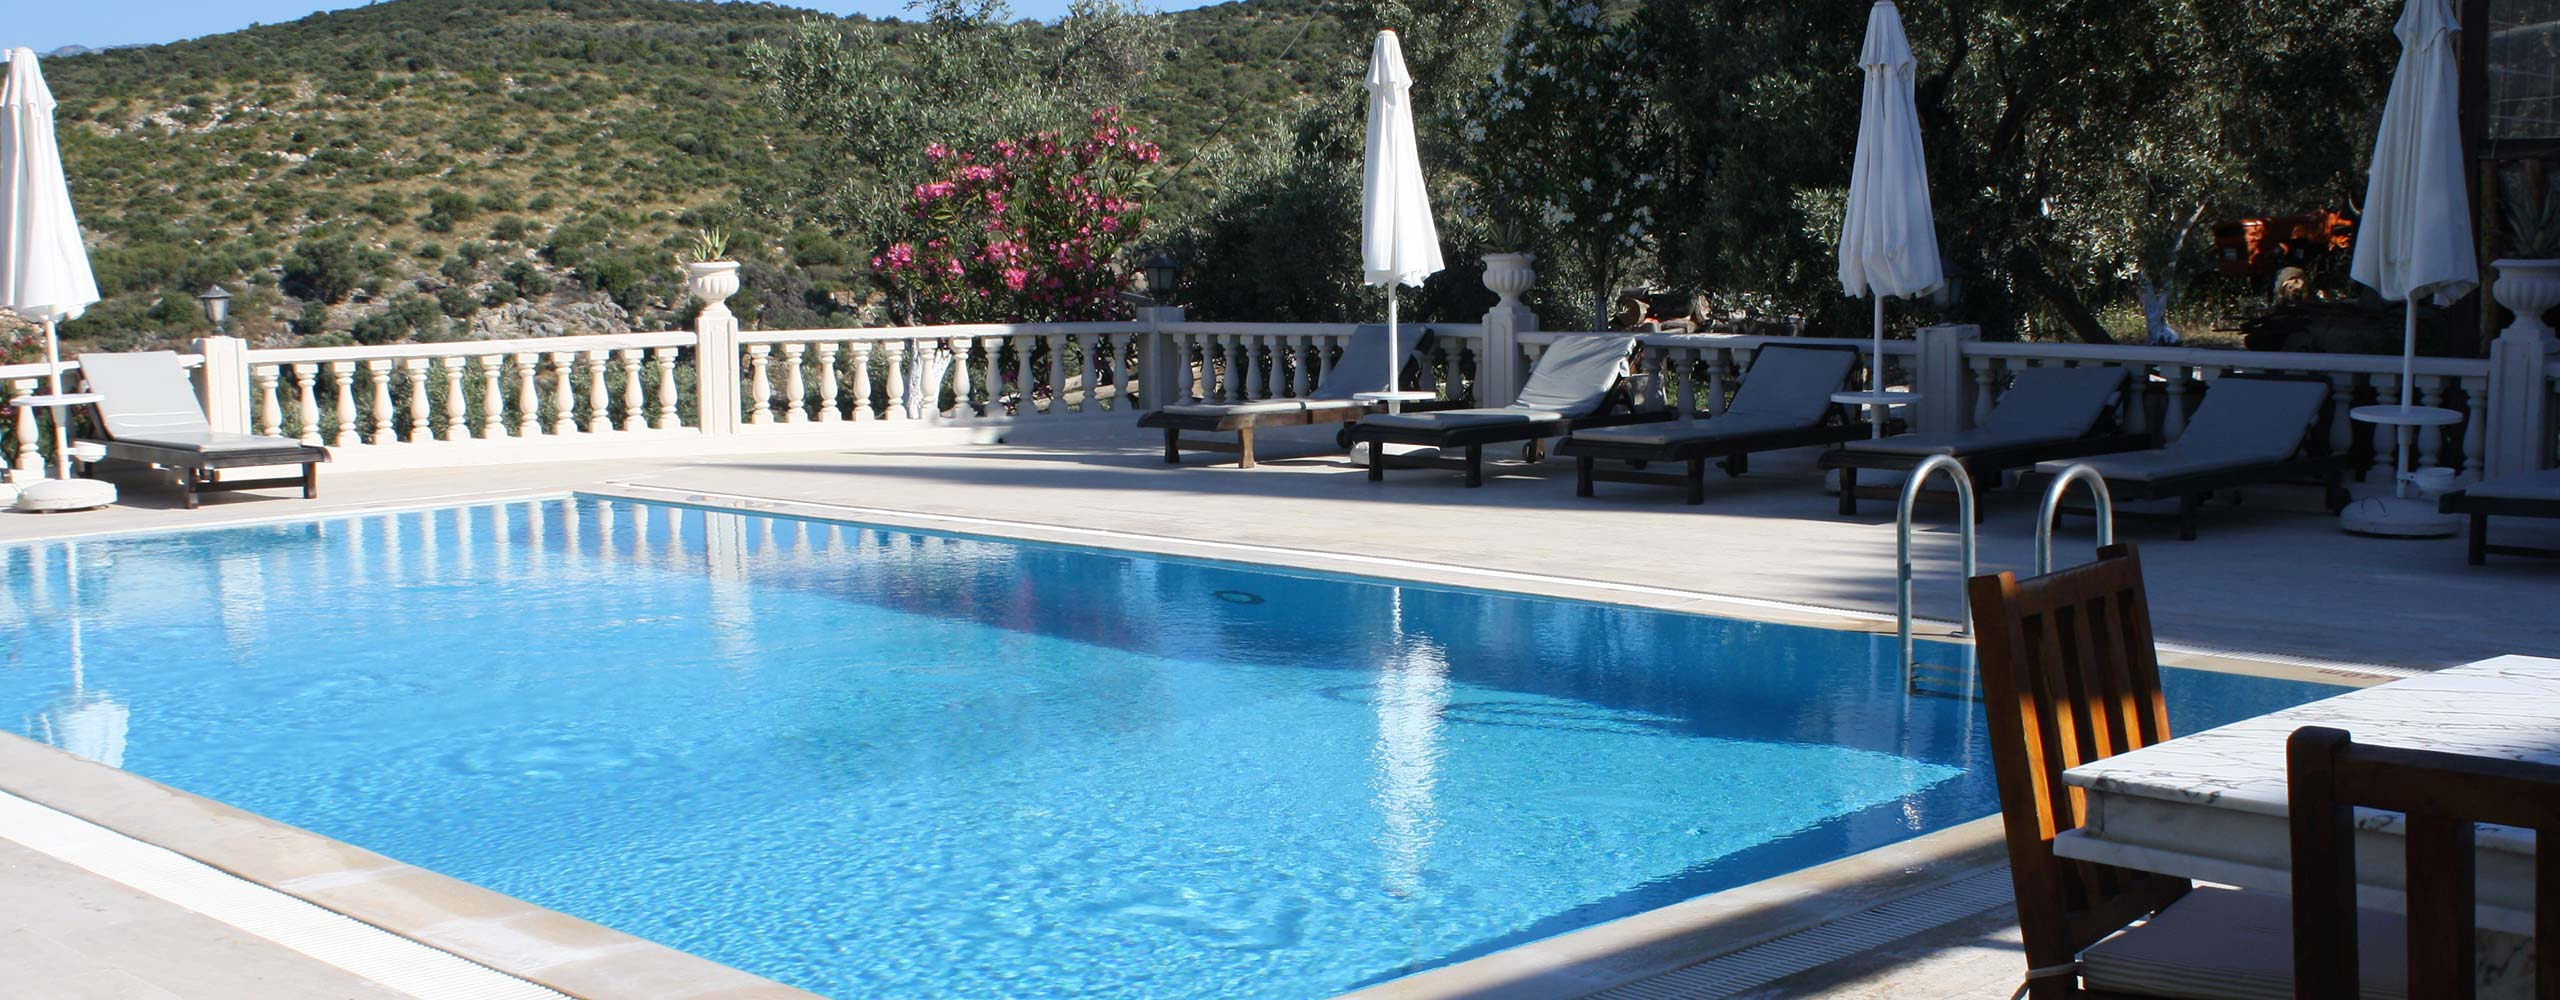 Patara Viewpoint Hotel Pool